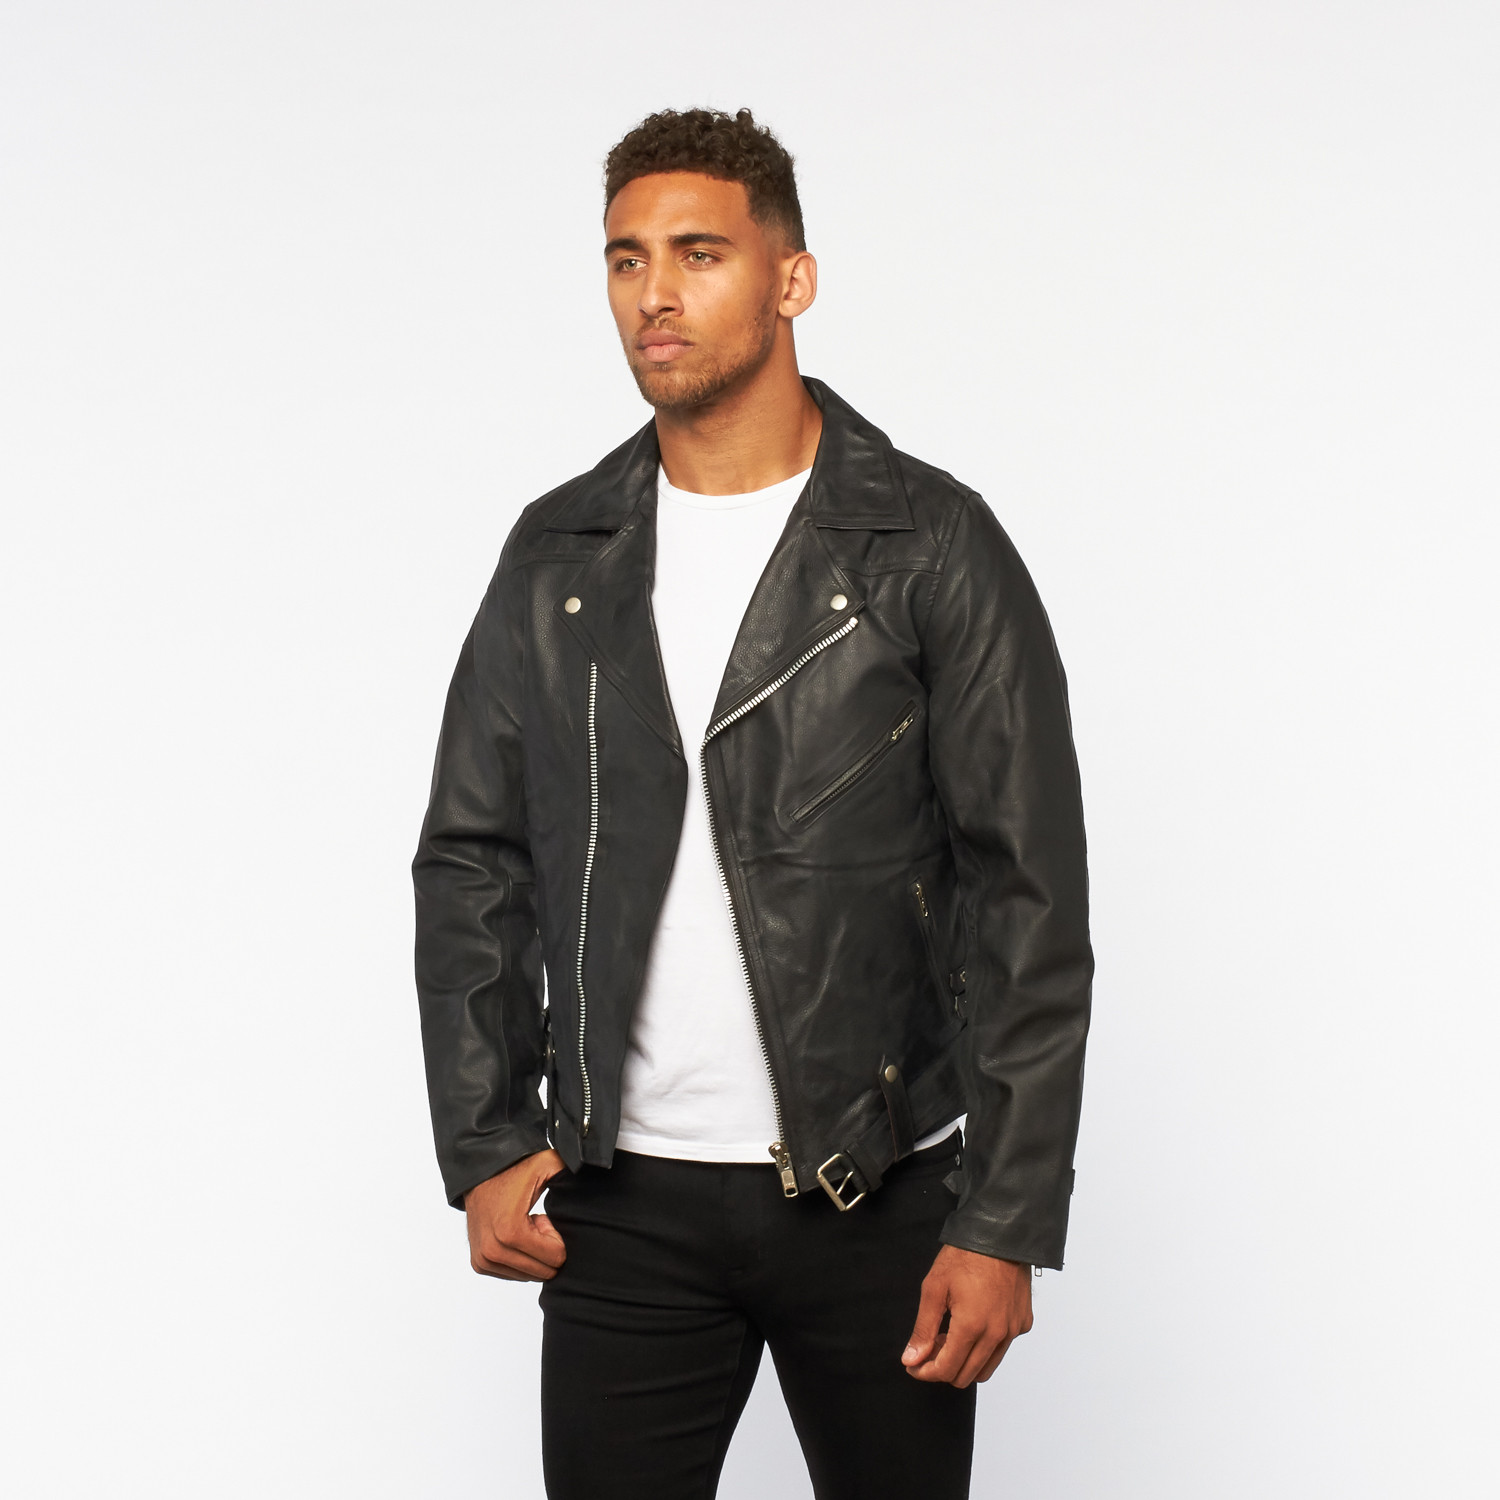 Leather jacket aesthetic - American Anarchy Leather Motorcycle Jacket Black Xs